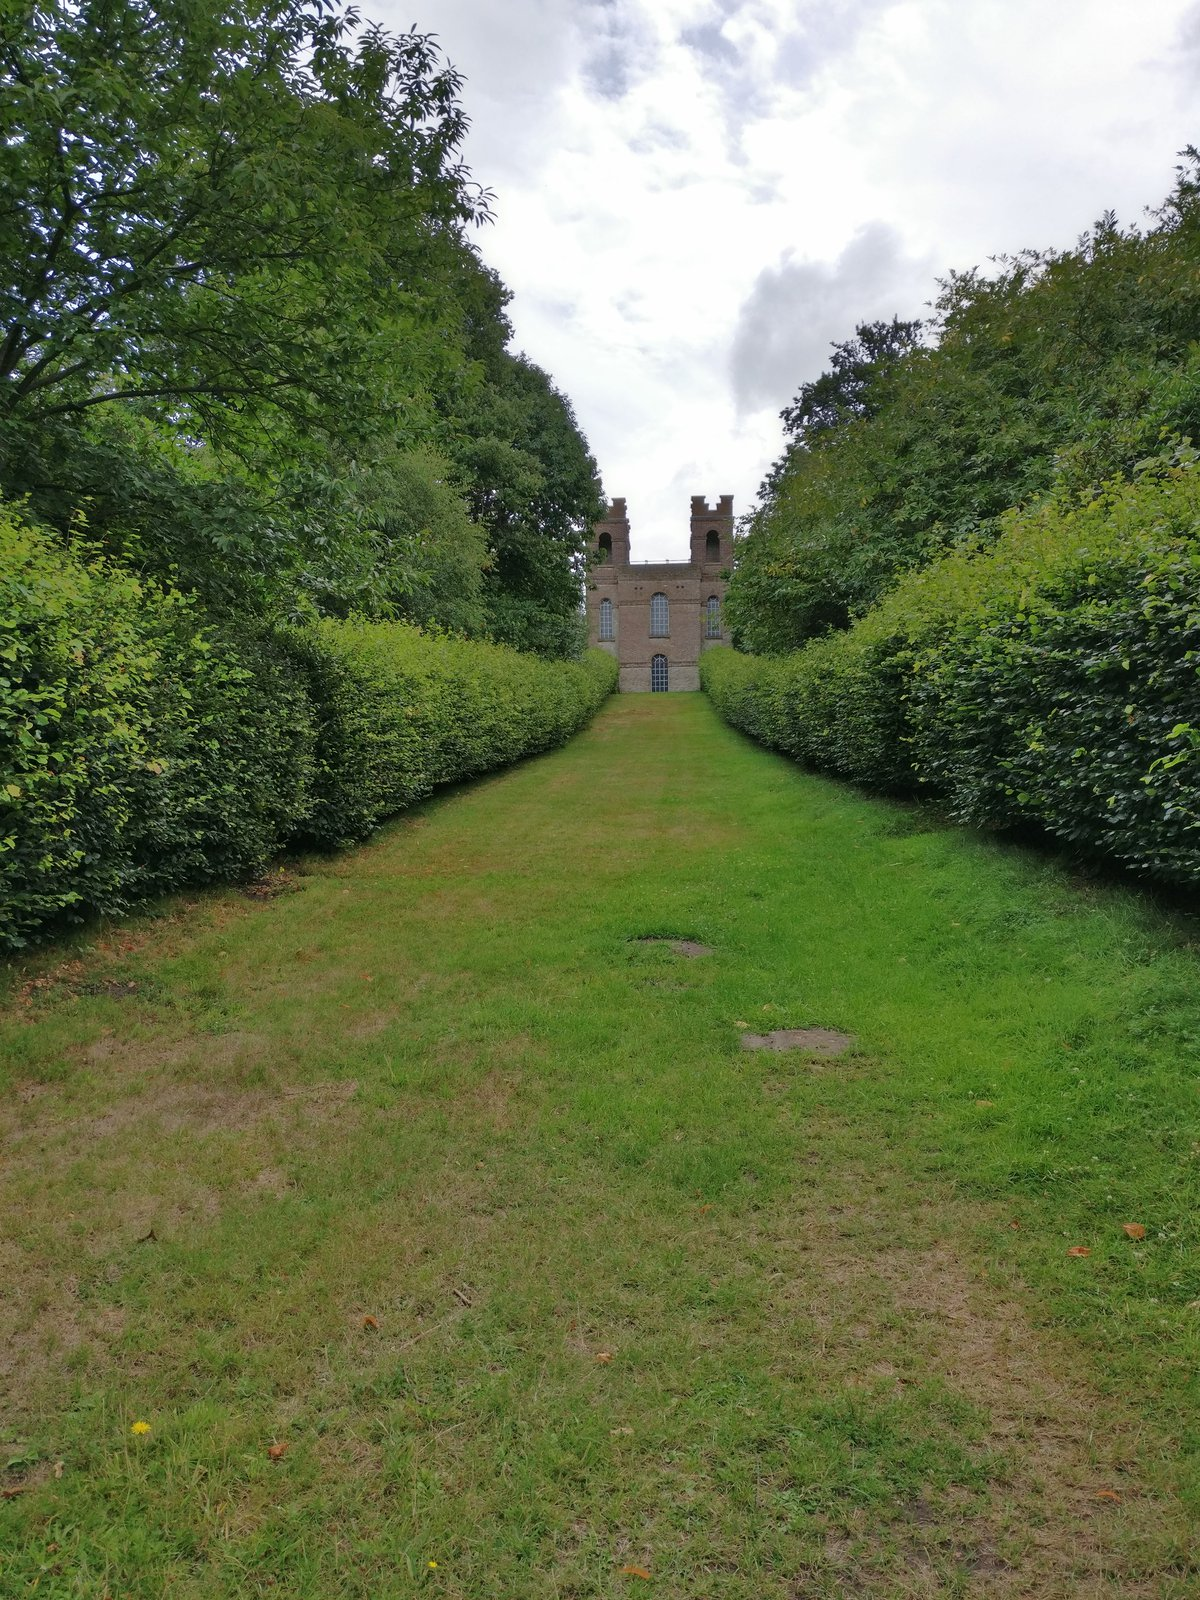 Building after hedge lined path